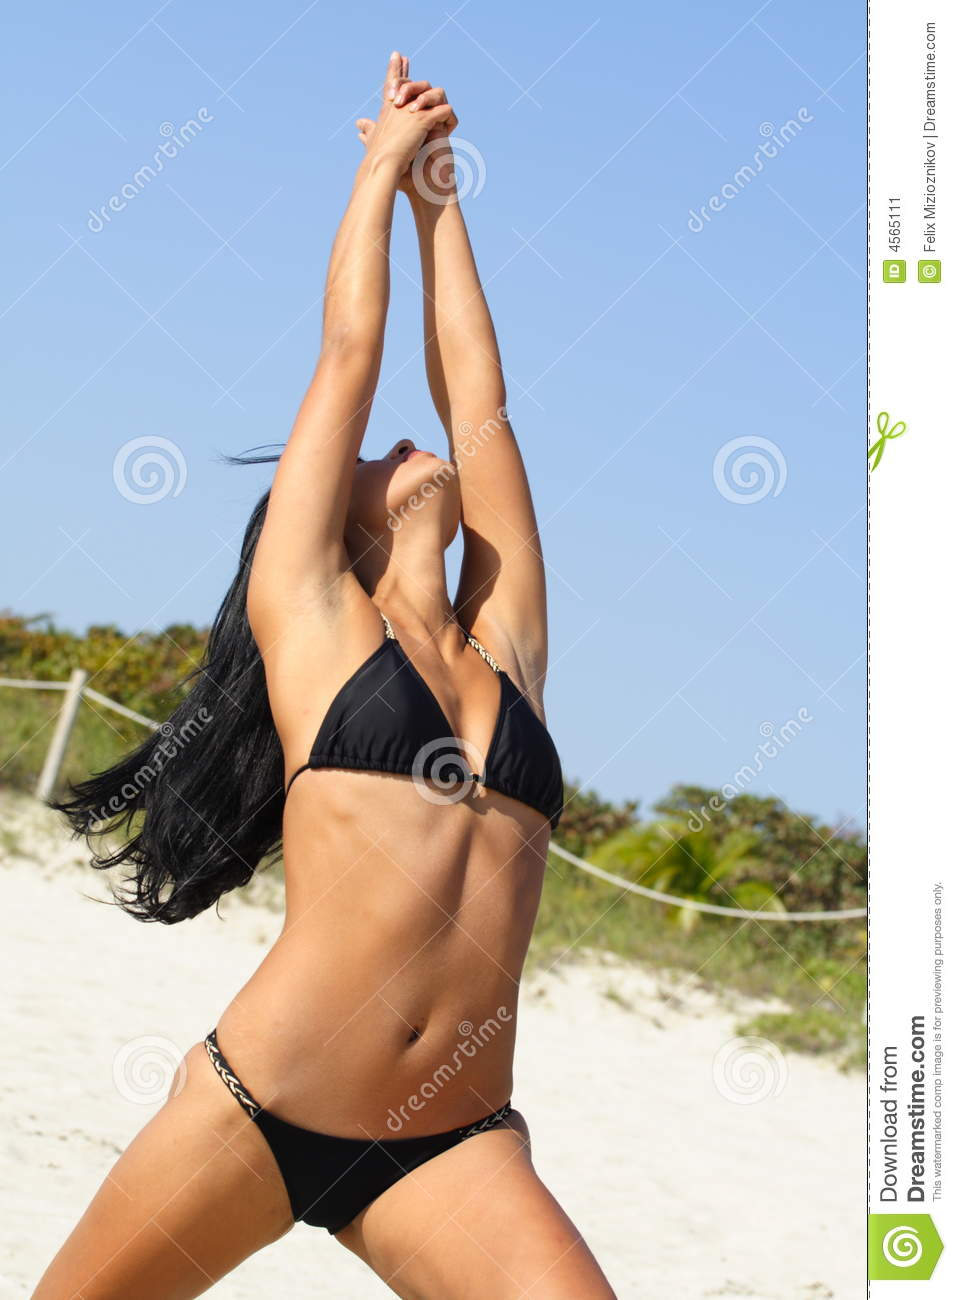 Woman Doing Yoga On The Beach Stock Image - Image: 4565111